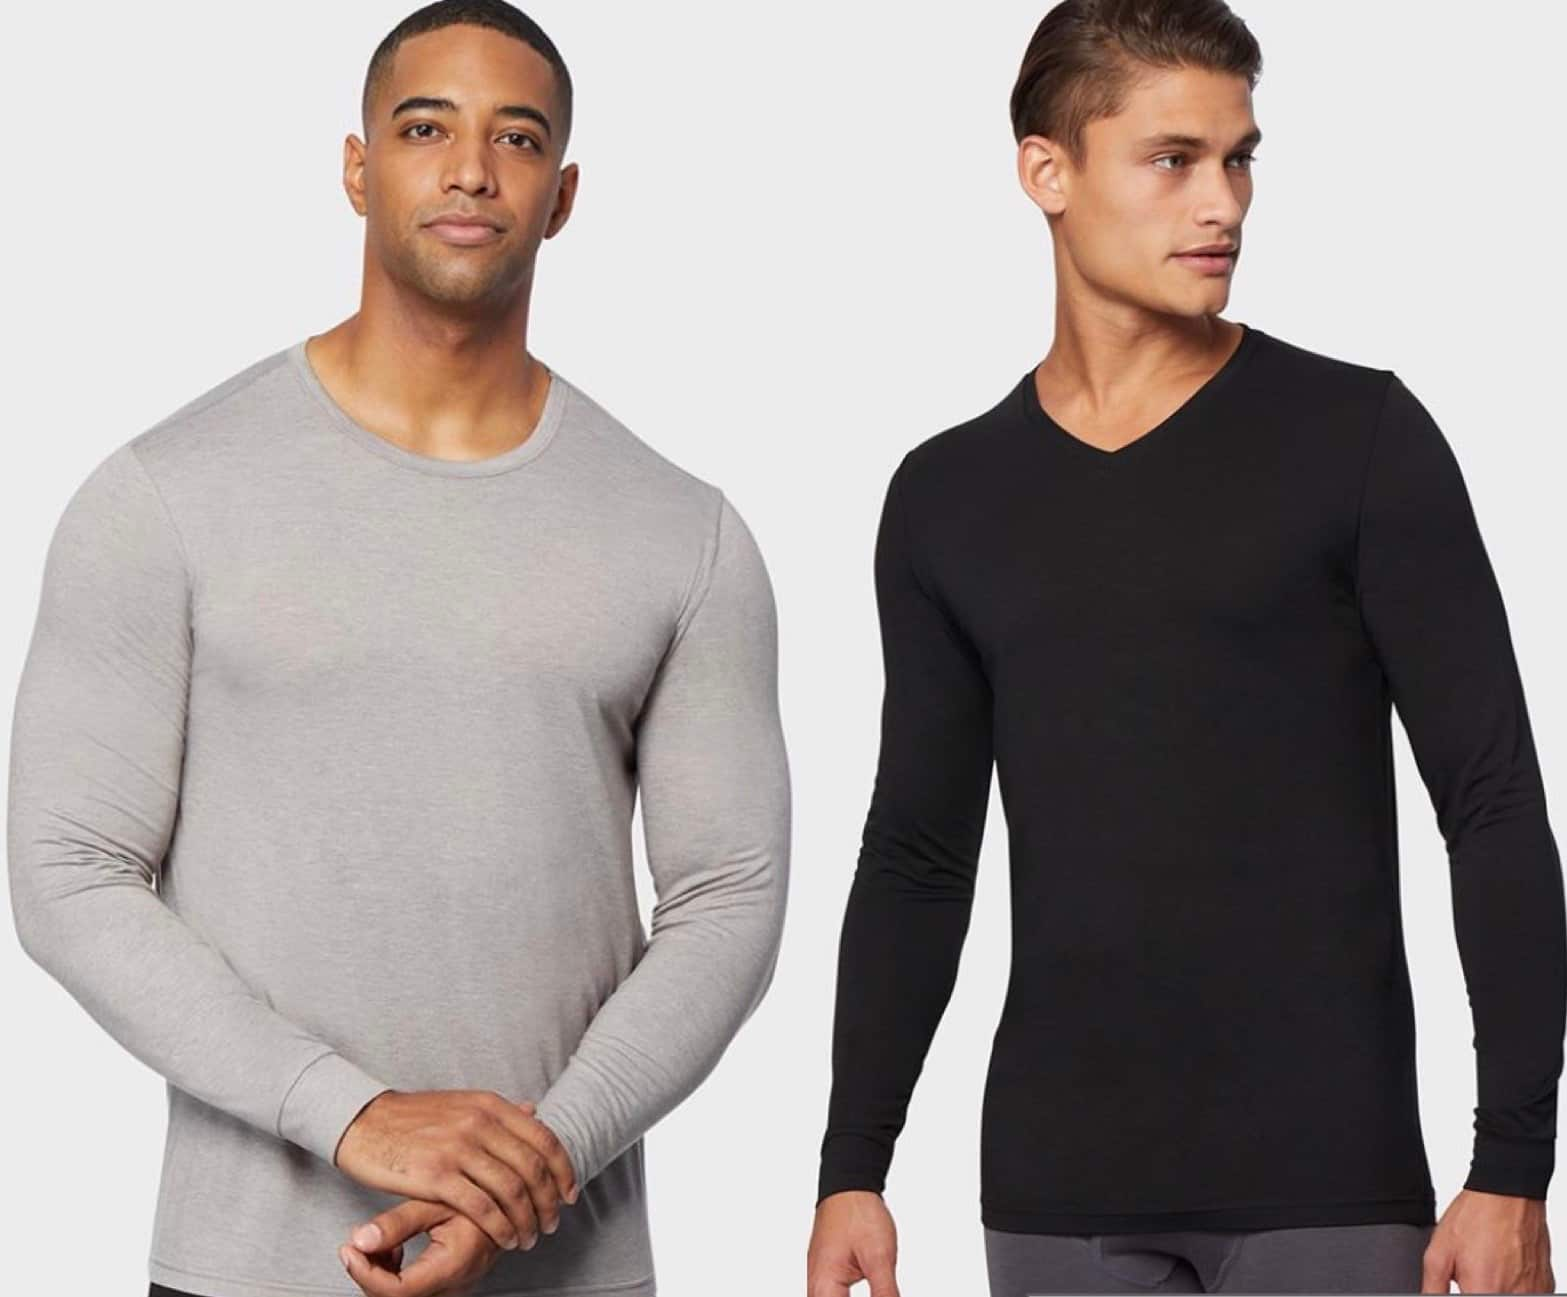 32 Degrees: Men's or Women's Lightweight Baselayer Top (various styles) 2 for $15, More + FS on $30+